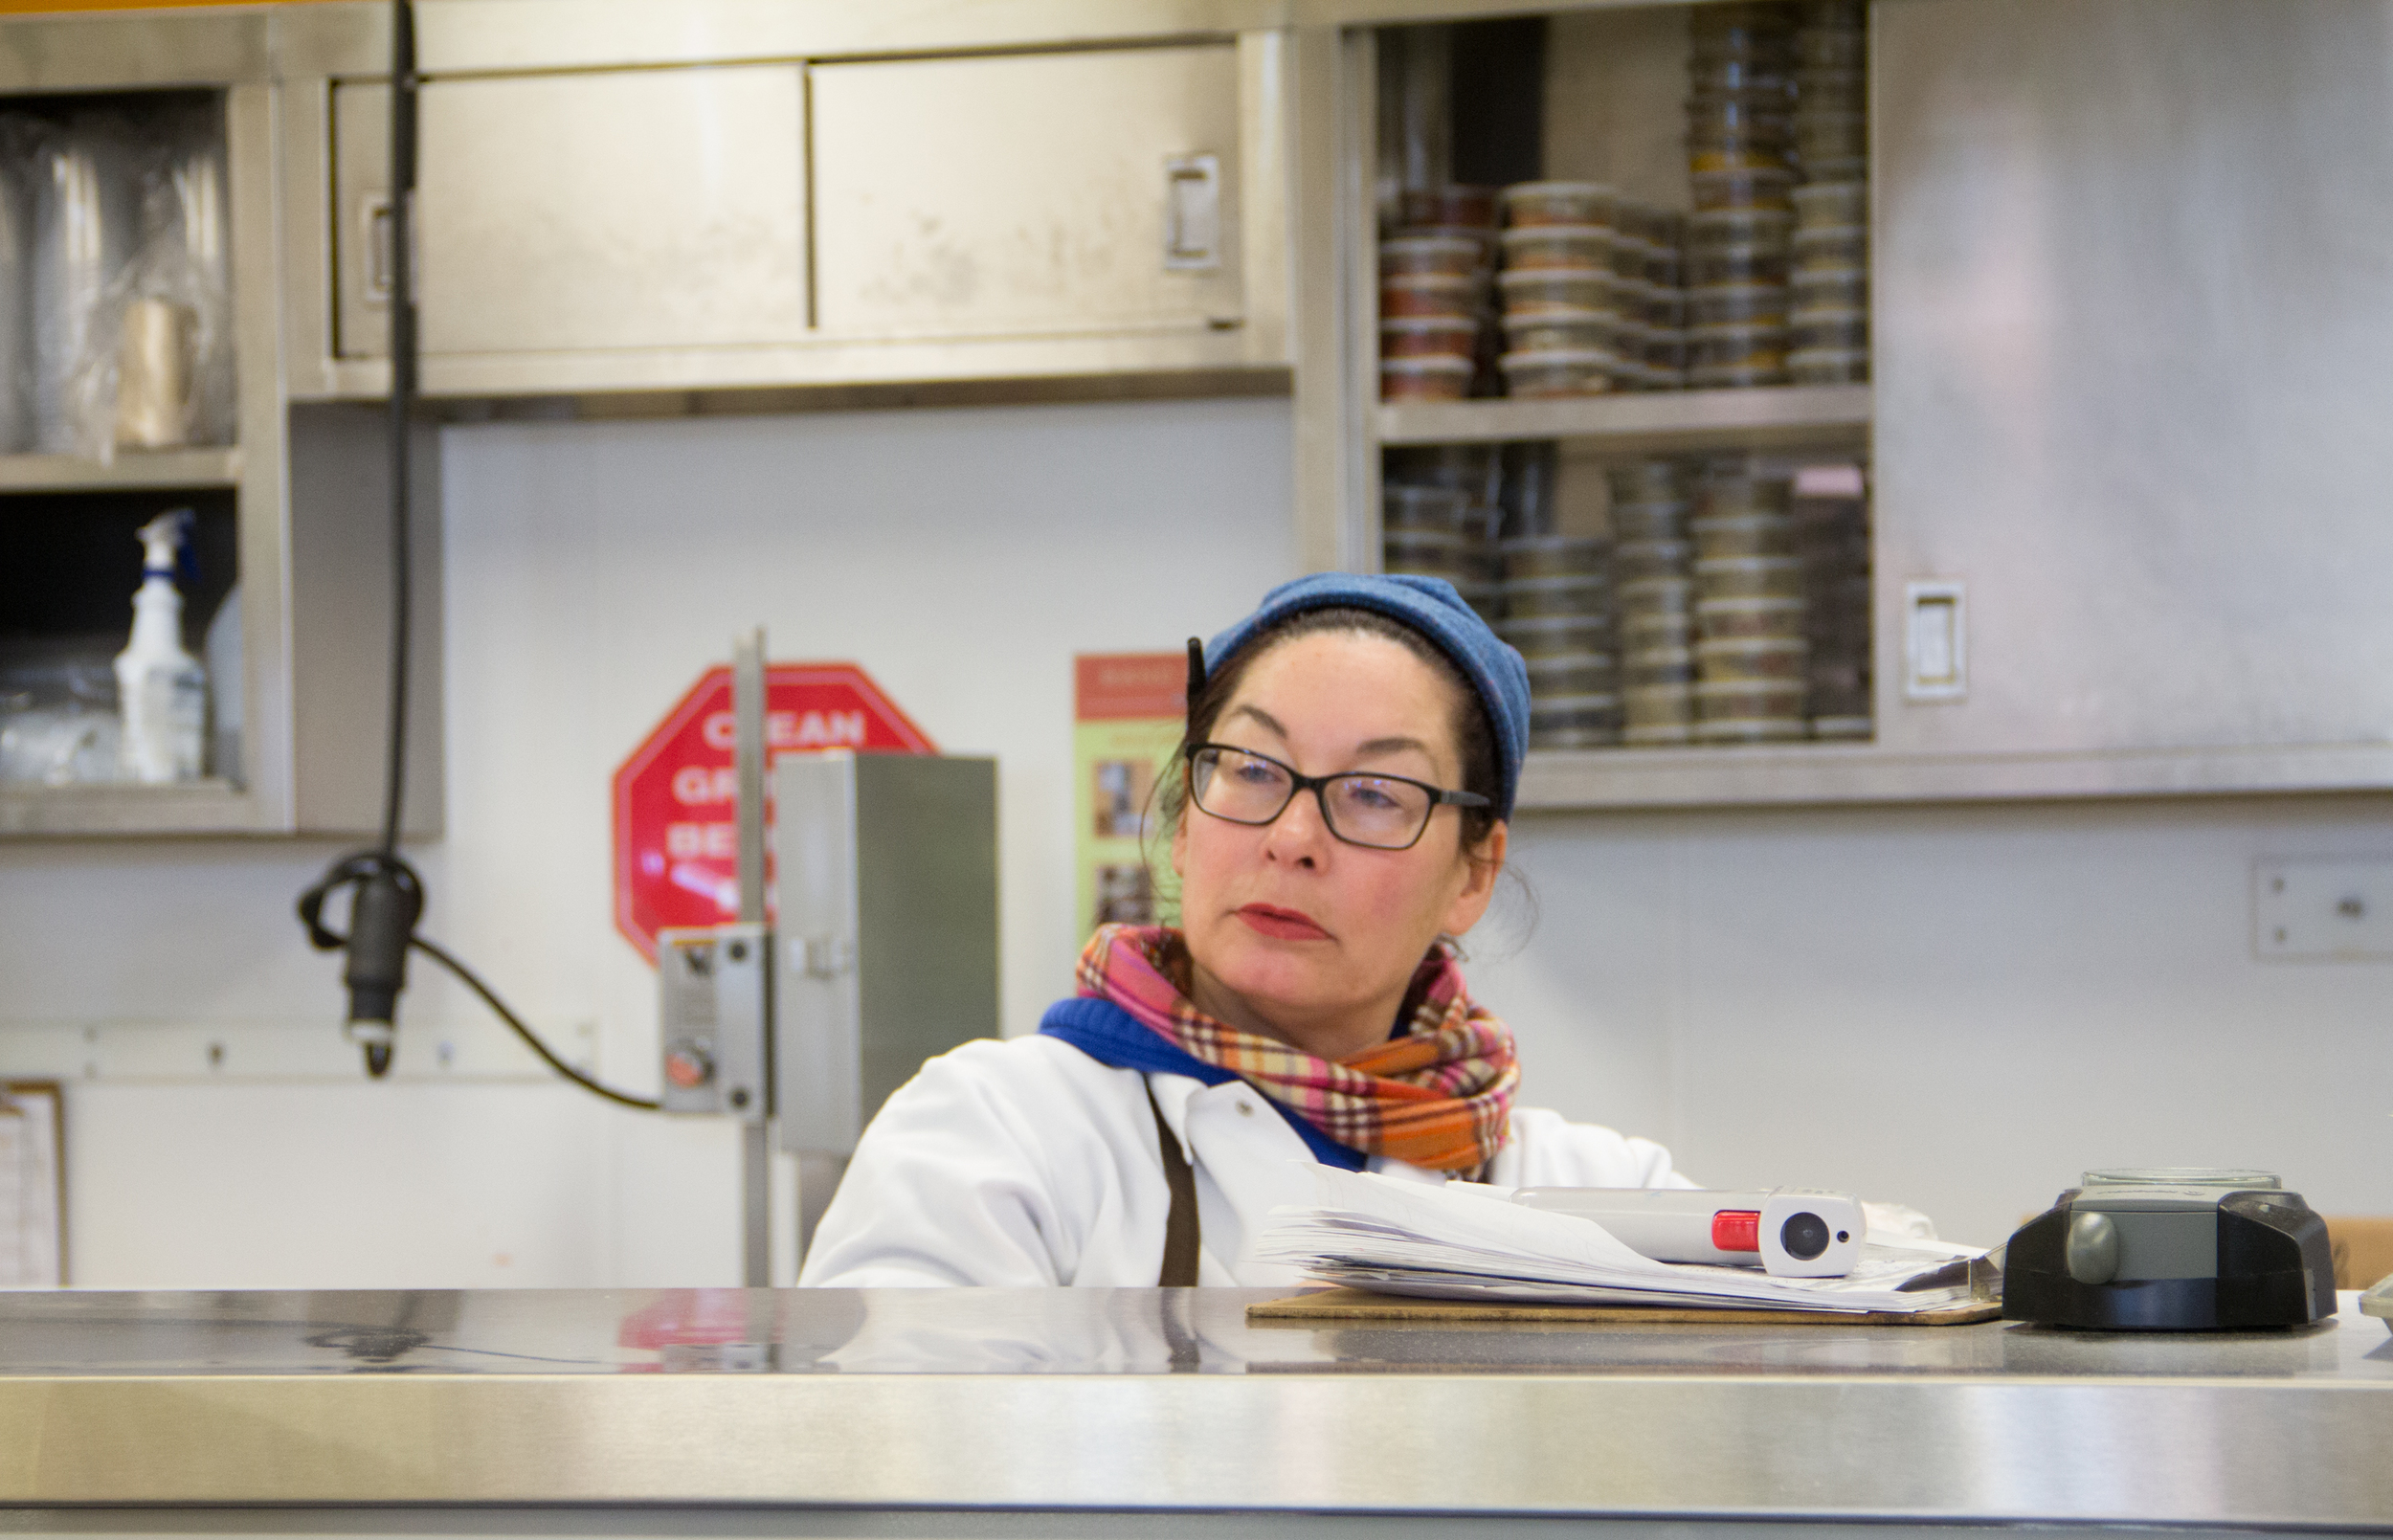 Barb Hroza is an Assistant Manager in the Hawthorne New Seasons meat department.